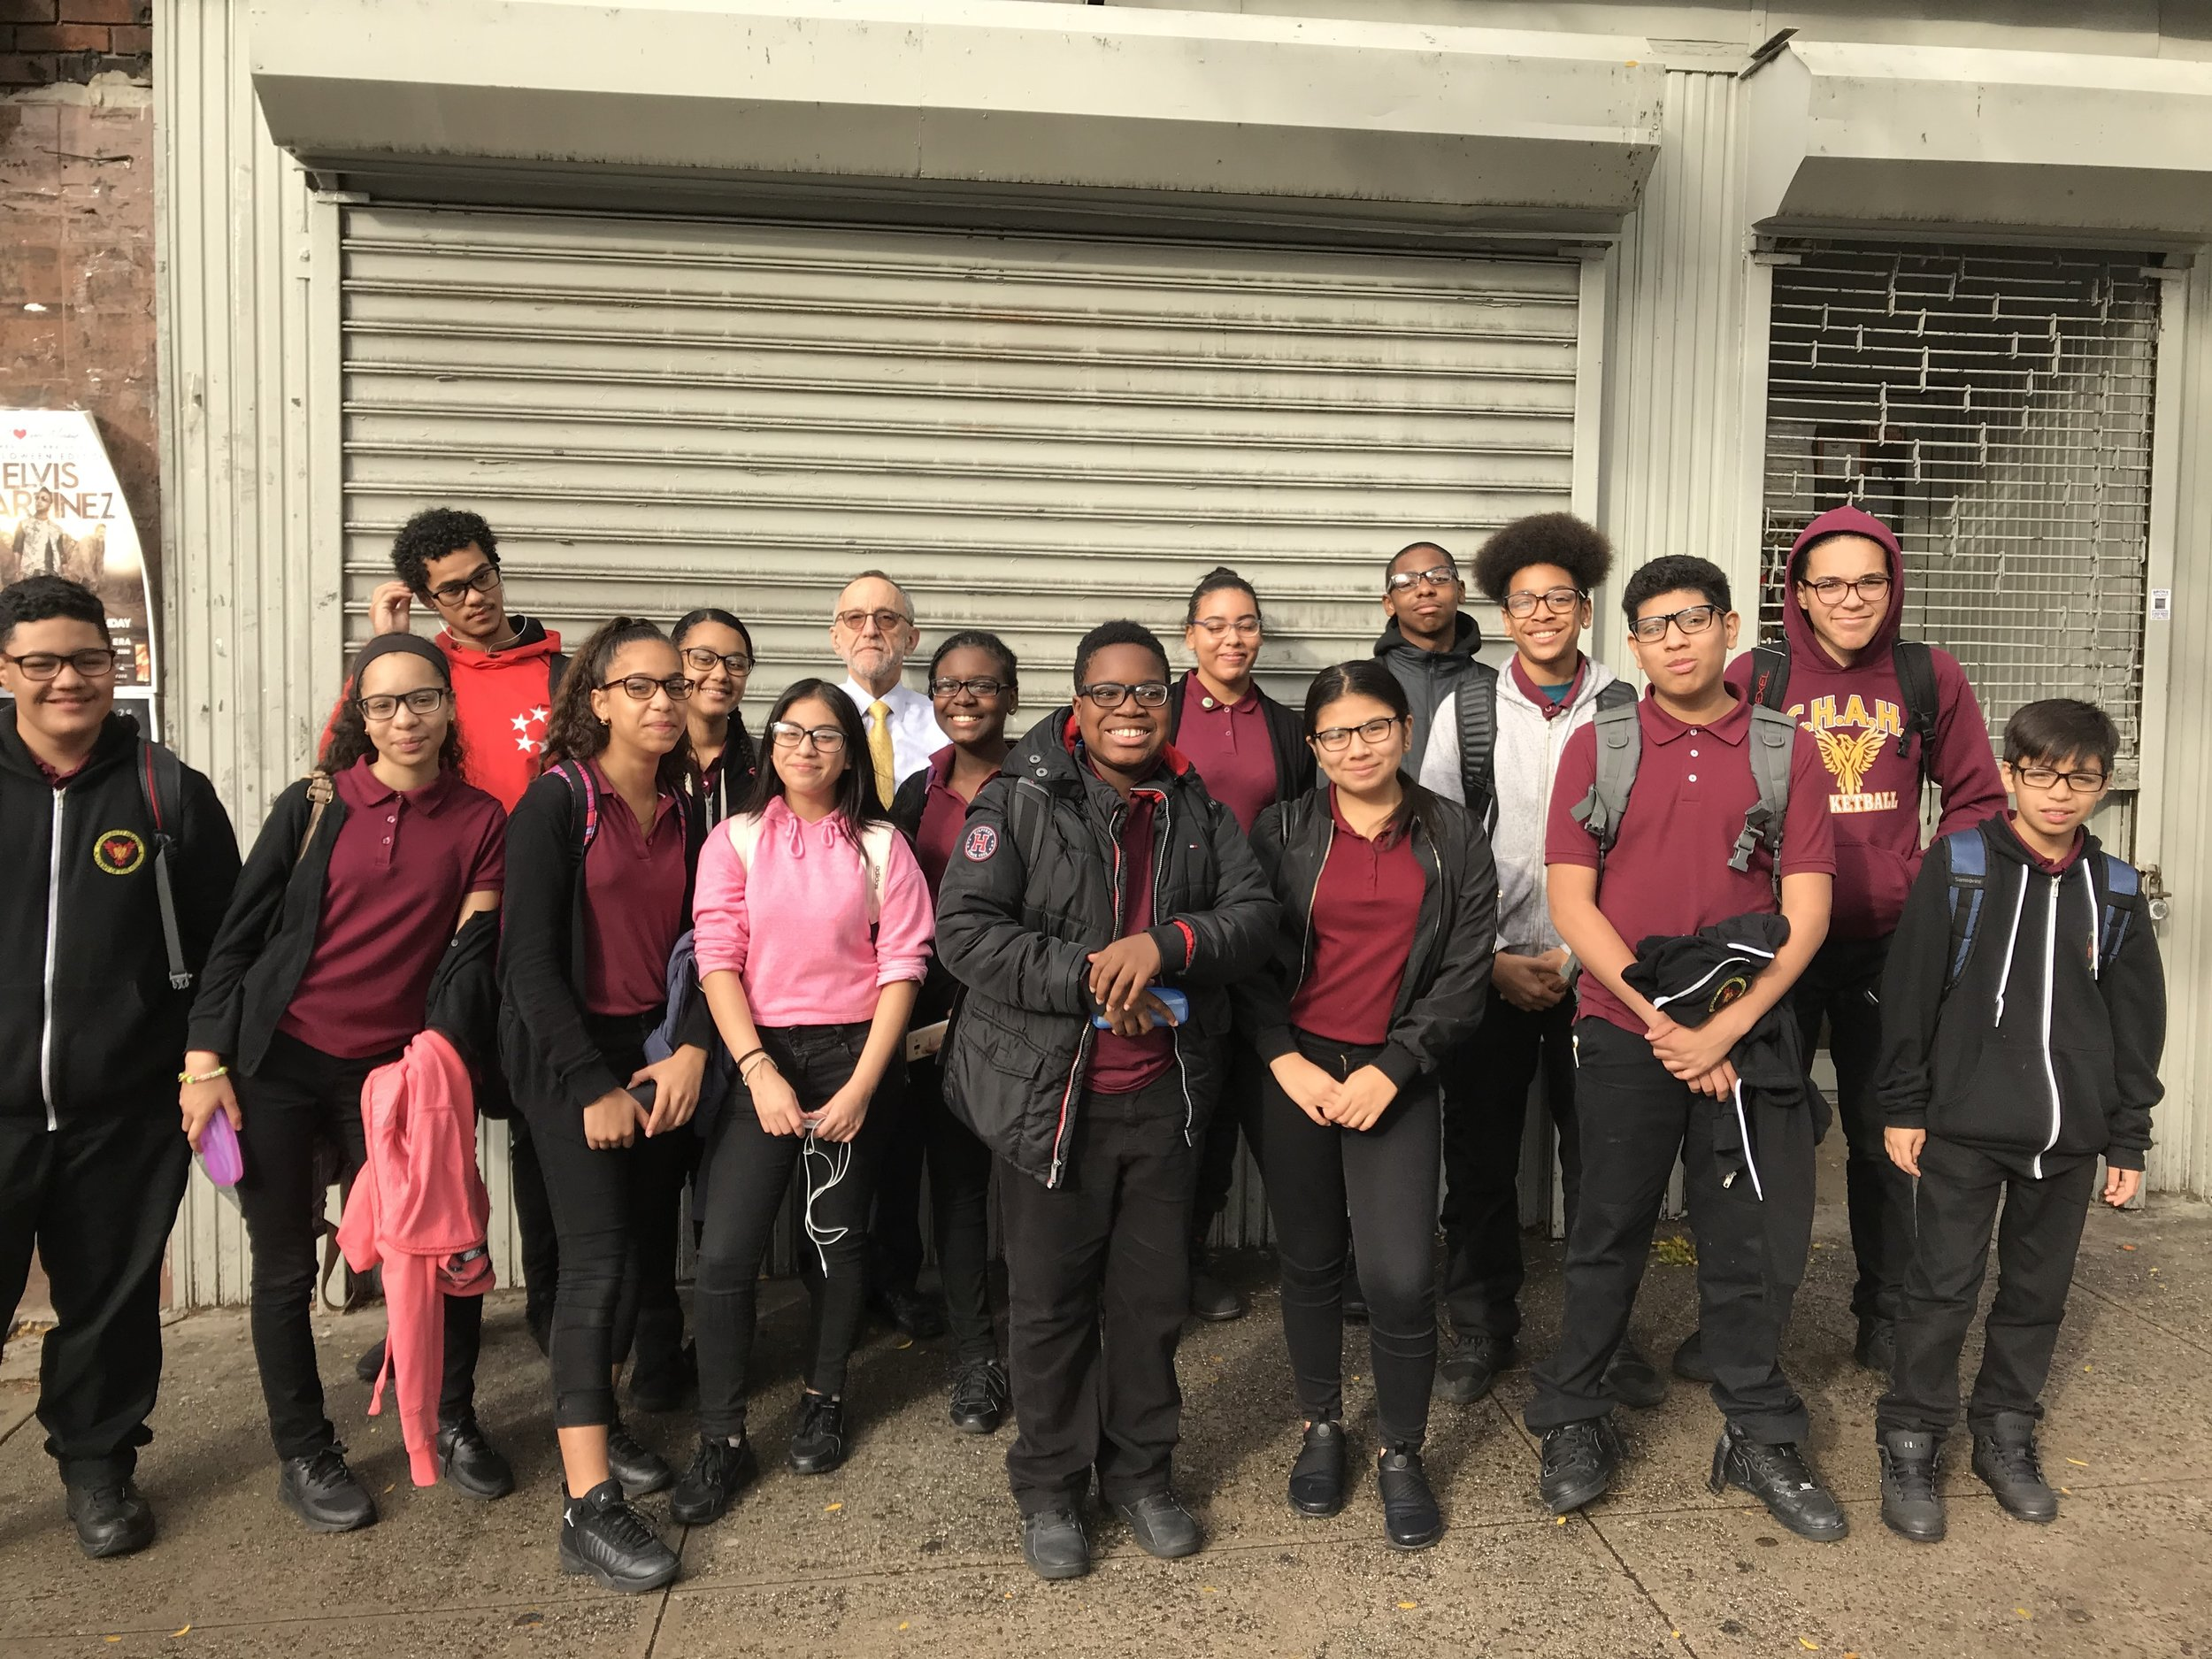 CHAH Students Get Free Glasses from Broadway Vision Center